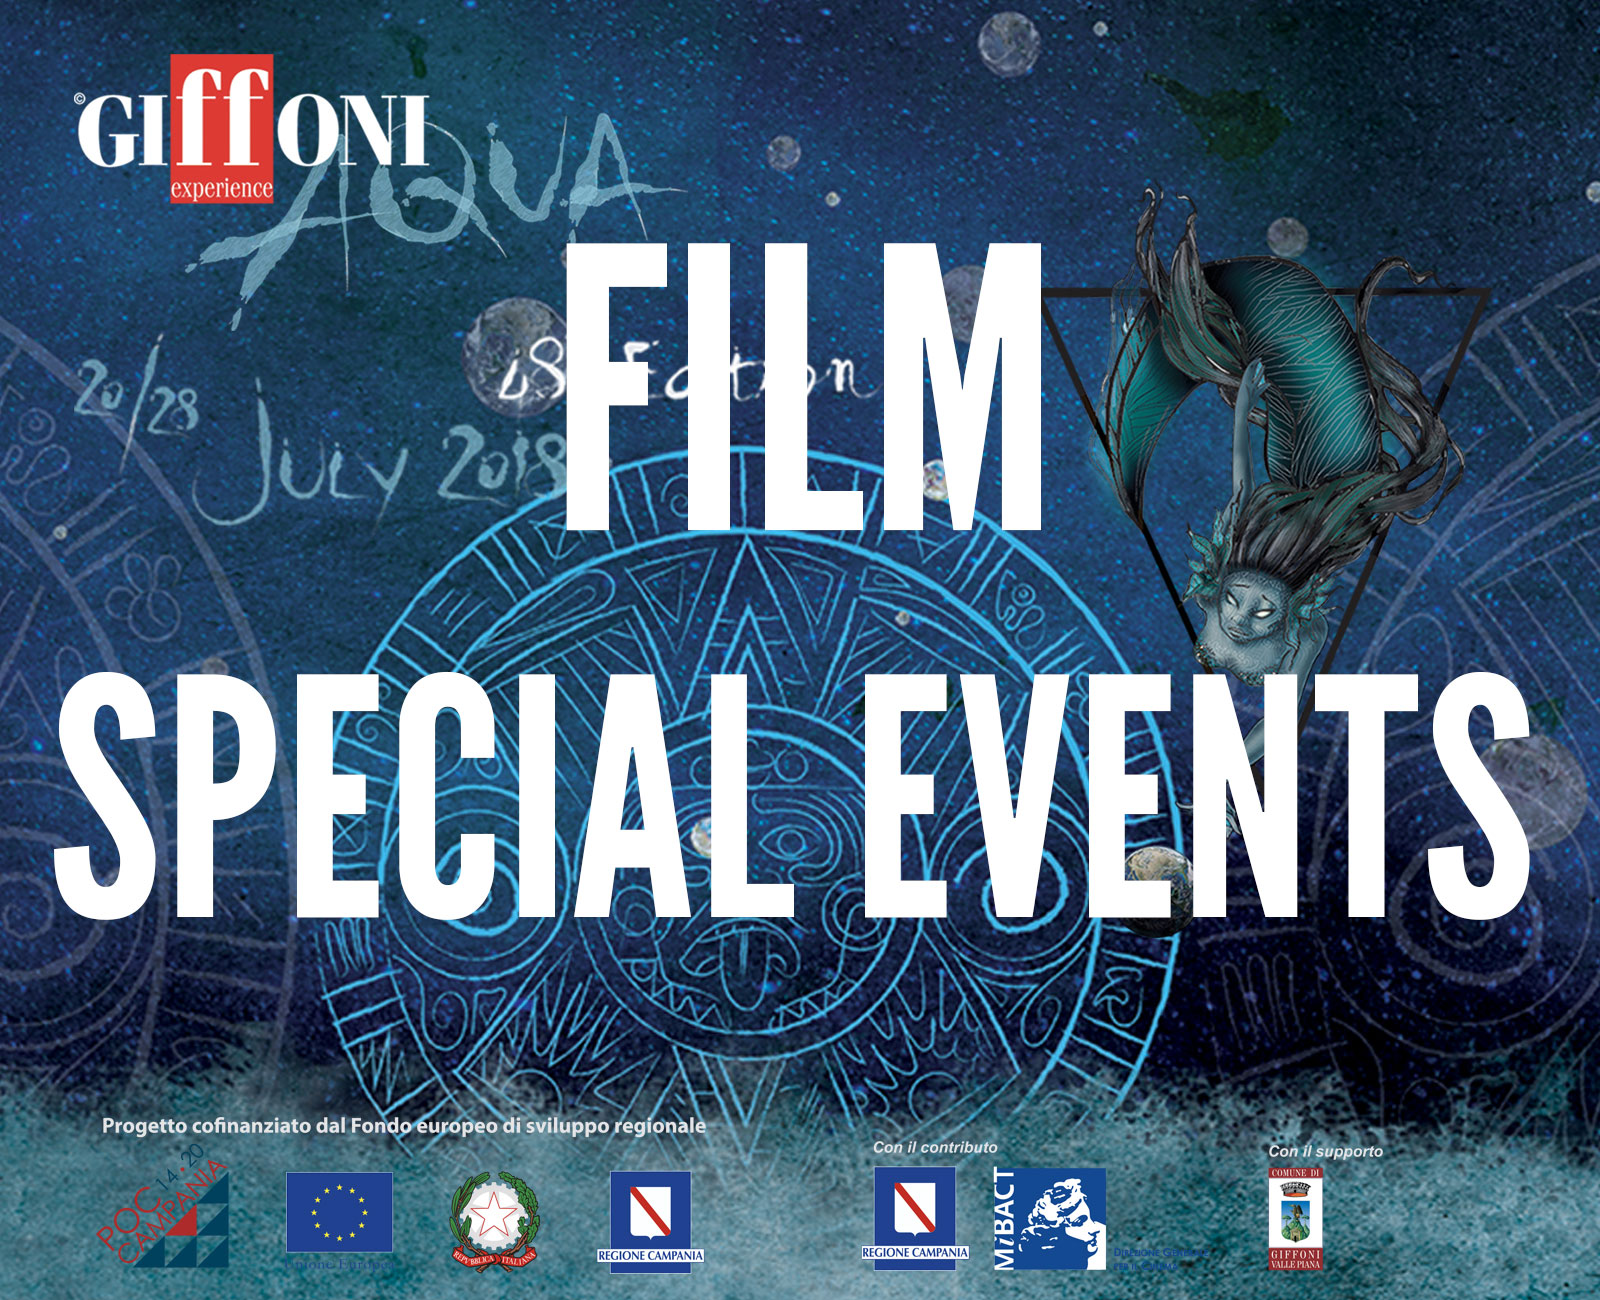 SCREENINGS AND SPECIAL EVENTS